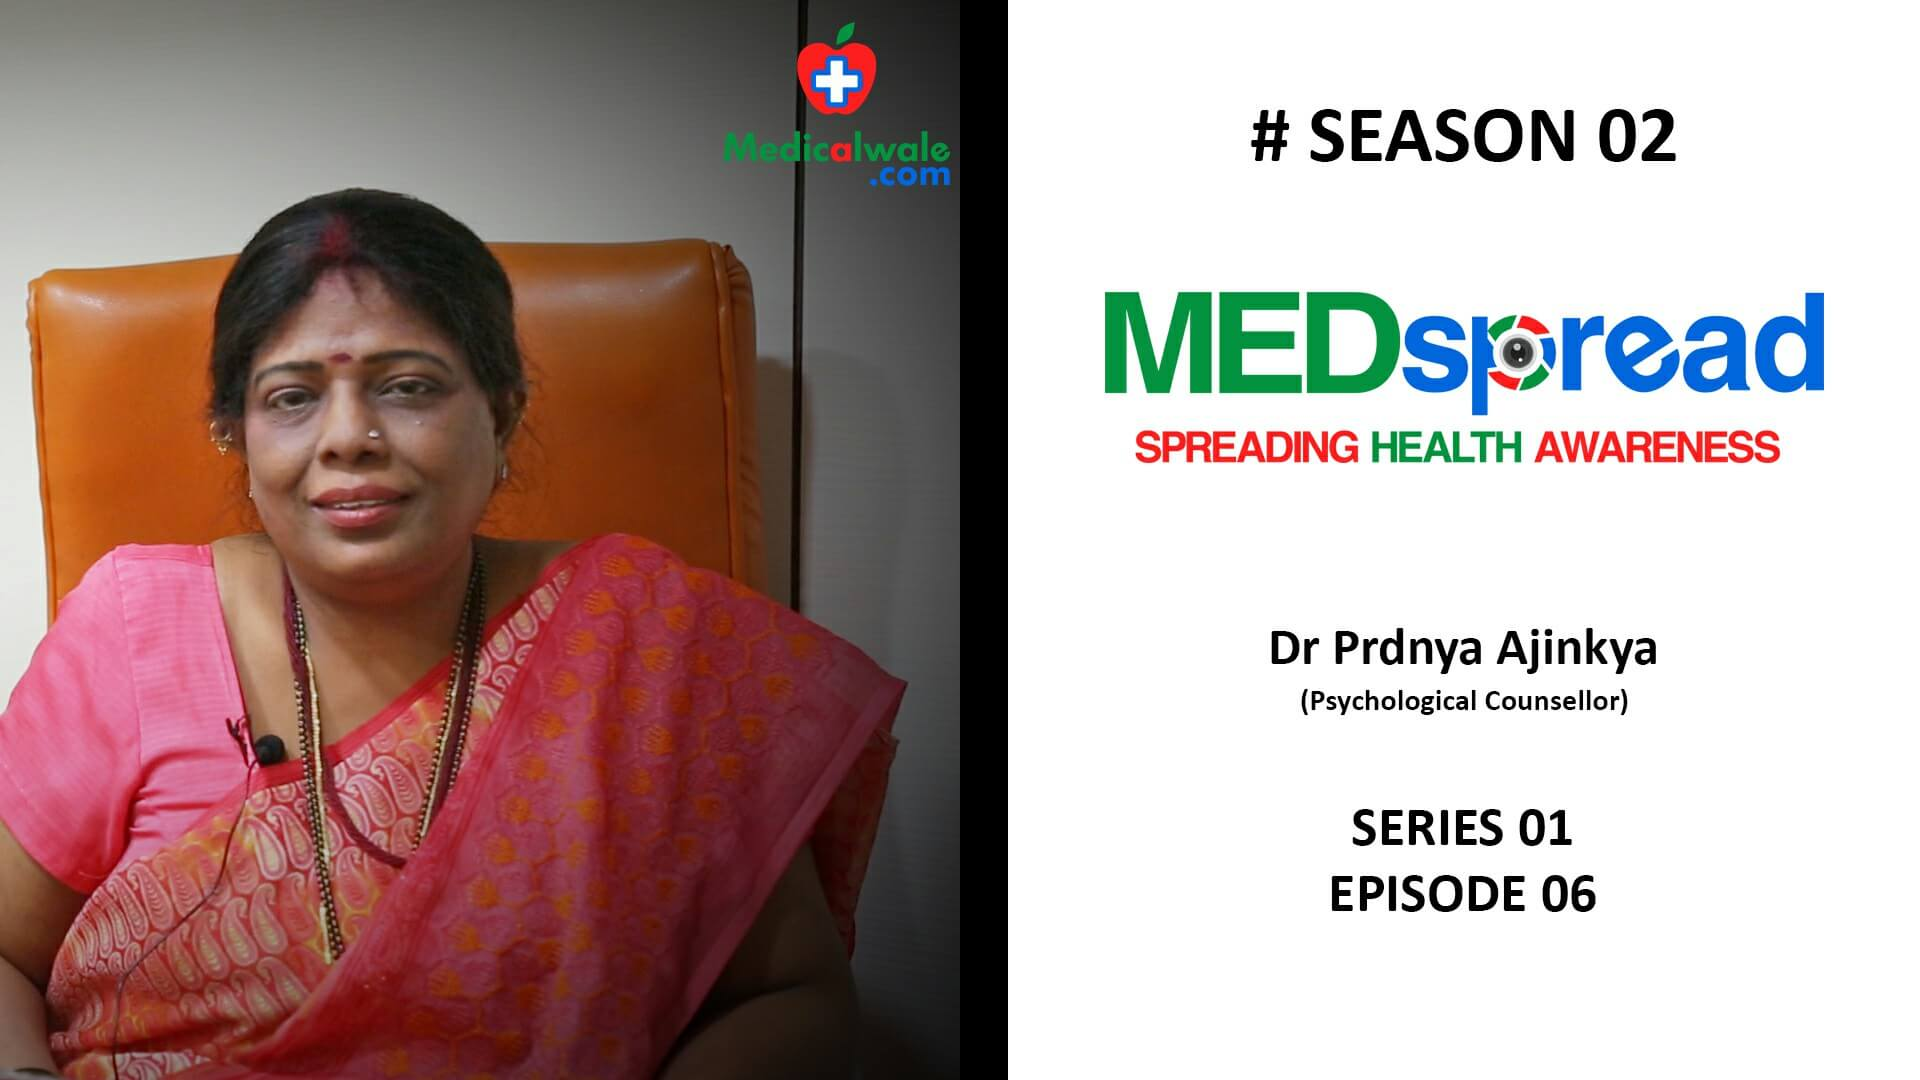 MedSpread Season 2 series 01 Ep 06 | Dr Pradnya Ajinkya (Psychological Counsellor)